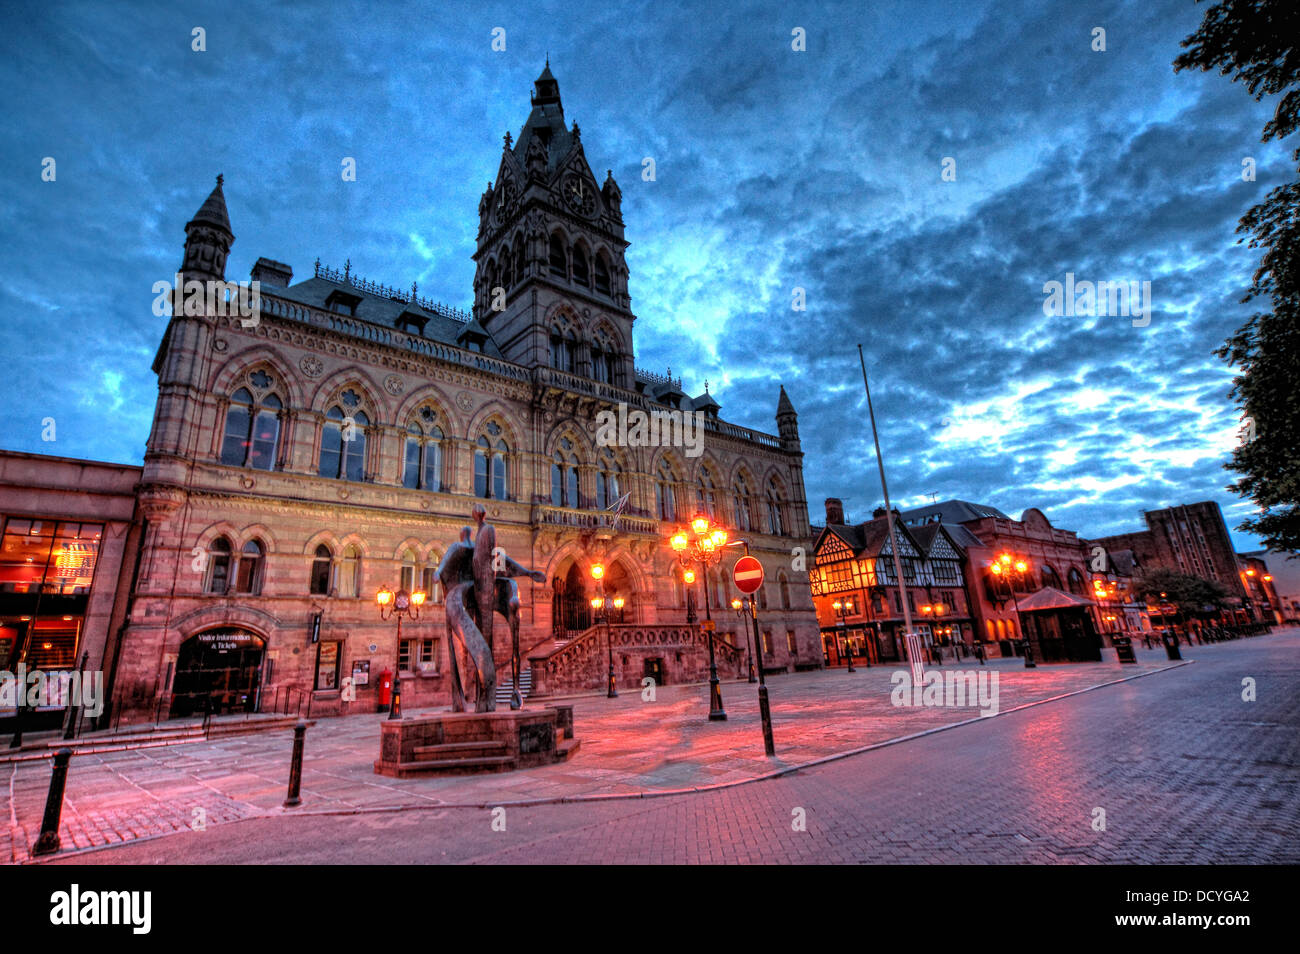 NW,North,West,classic,history,historic,Cheshire,West,and,CWAC,east,tourist,tourism,council,local,authority,gem,gems,shot,nightshot,Chester,City,Night,at,Dusk,England,UK,Deva,Roman,interesting,street,cobbled,lighting,light,imposing,@hotpixuk,hotpixuk,Buy Pictures of,Buy Images Of,Gotonysmith Chester is a city in Cheshire,England. Lying on the River Dee,close to the border with Wales,it is home to 120,622 inhabitants,and,is,the,largest,and,most,populous,settlement,of,the,wider,unitary,authority,area,of,Cheshire,West,and,Chester,which had a population of 328,100,according,to,the,2001,Census.,Chester,was,granted,city,status,in,1541.,Chester,was,founded,as,a,or,Roman,fort,with,the,name,Deva,Victrix,in,the,year,79,by,the,Roman,Legio,II,Adiutrix,during,the,reign,of,the,Emperor,Vespasian.,Chesters,four,main,roads,Eastgate,Northgate,Watergate and Bridge,follow routes laid out at this time – almost 2,000 years ago. One of the,castrum,City Centre,Chester City Centre